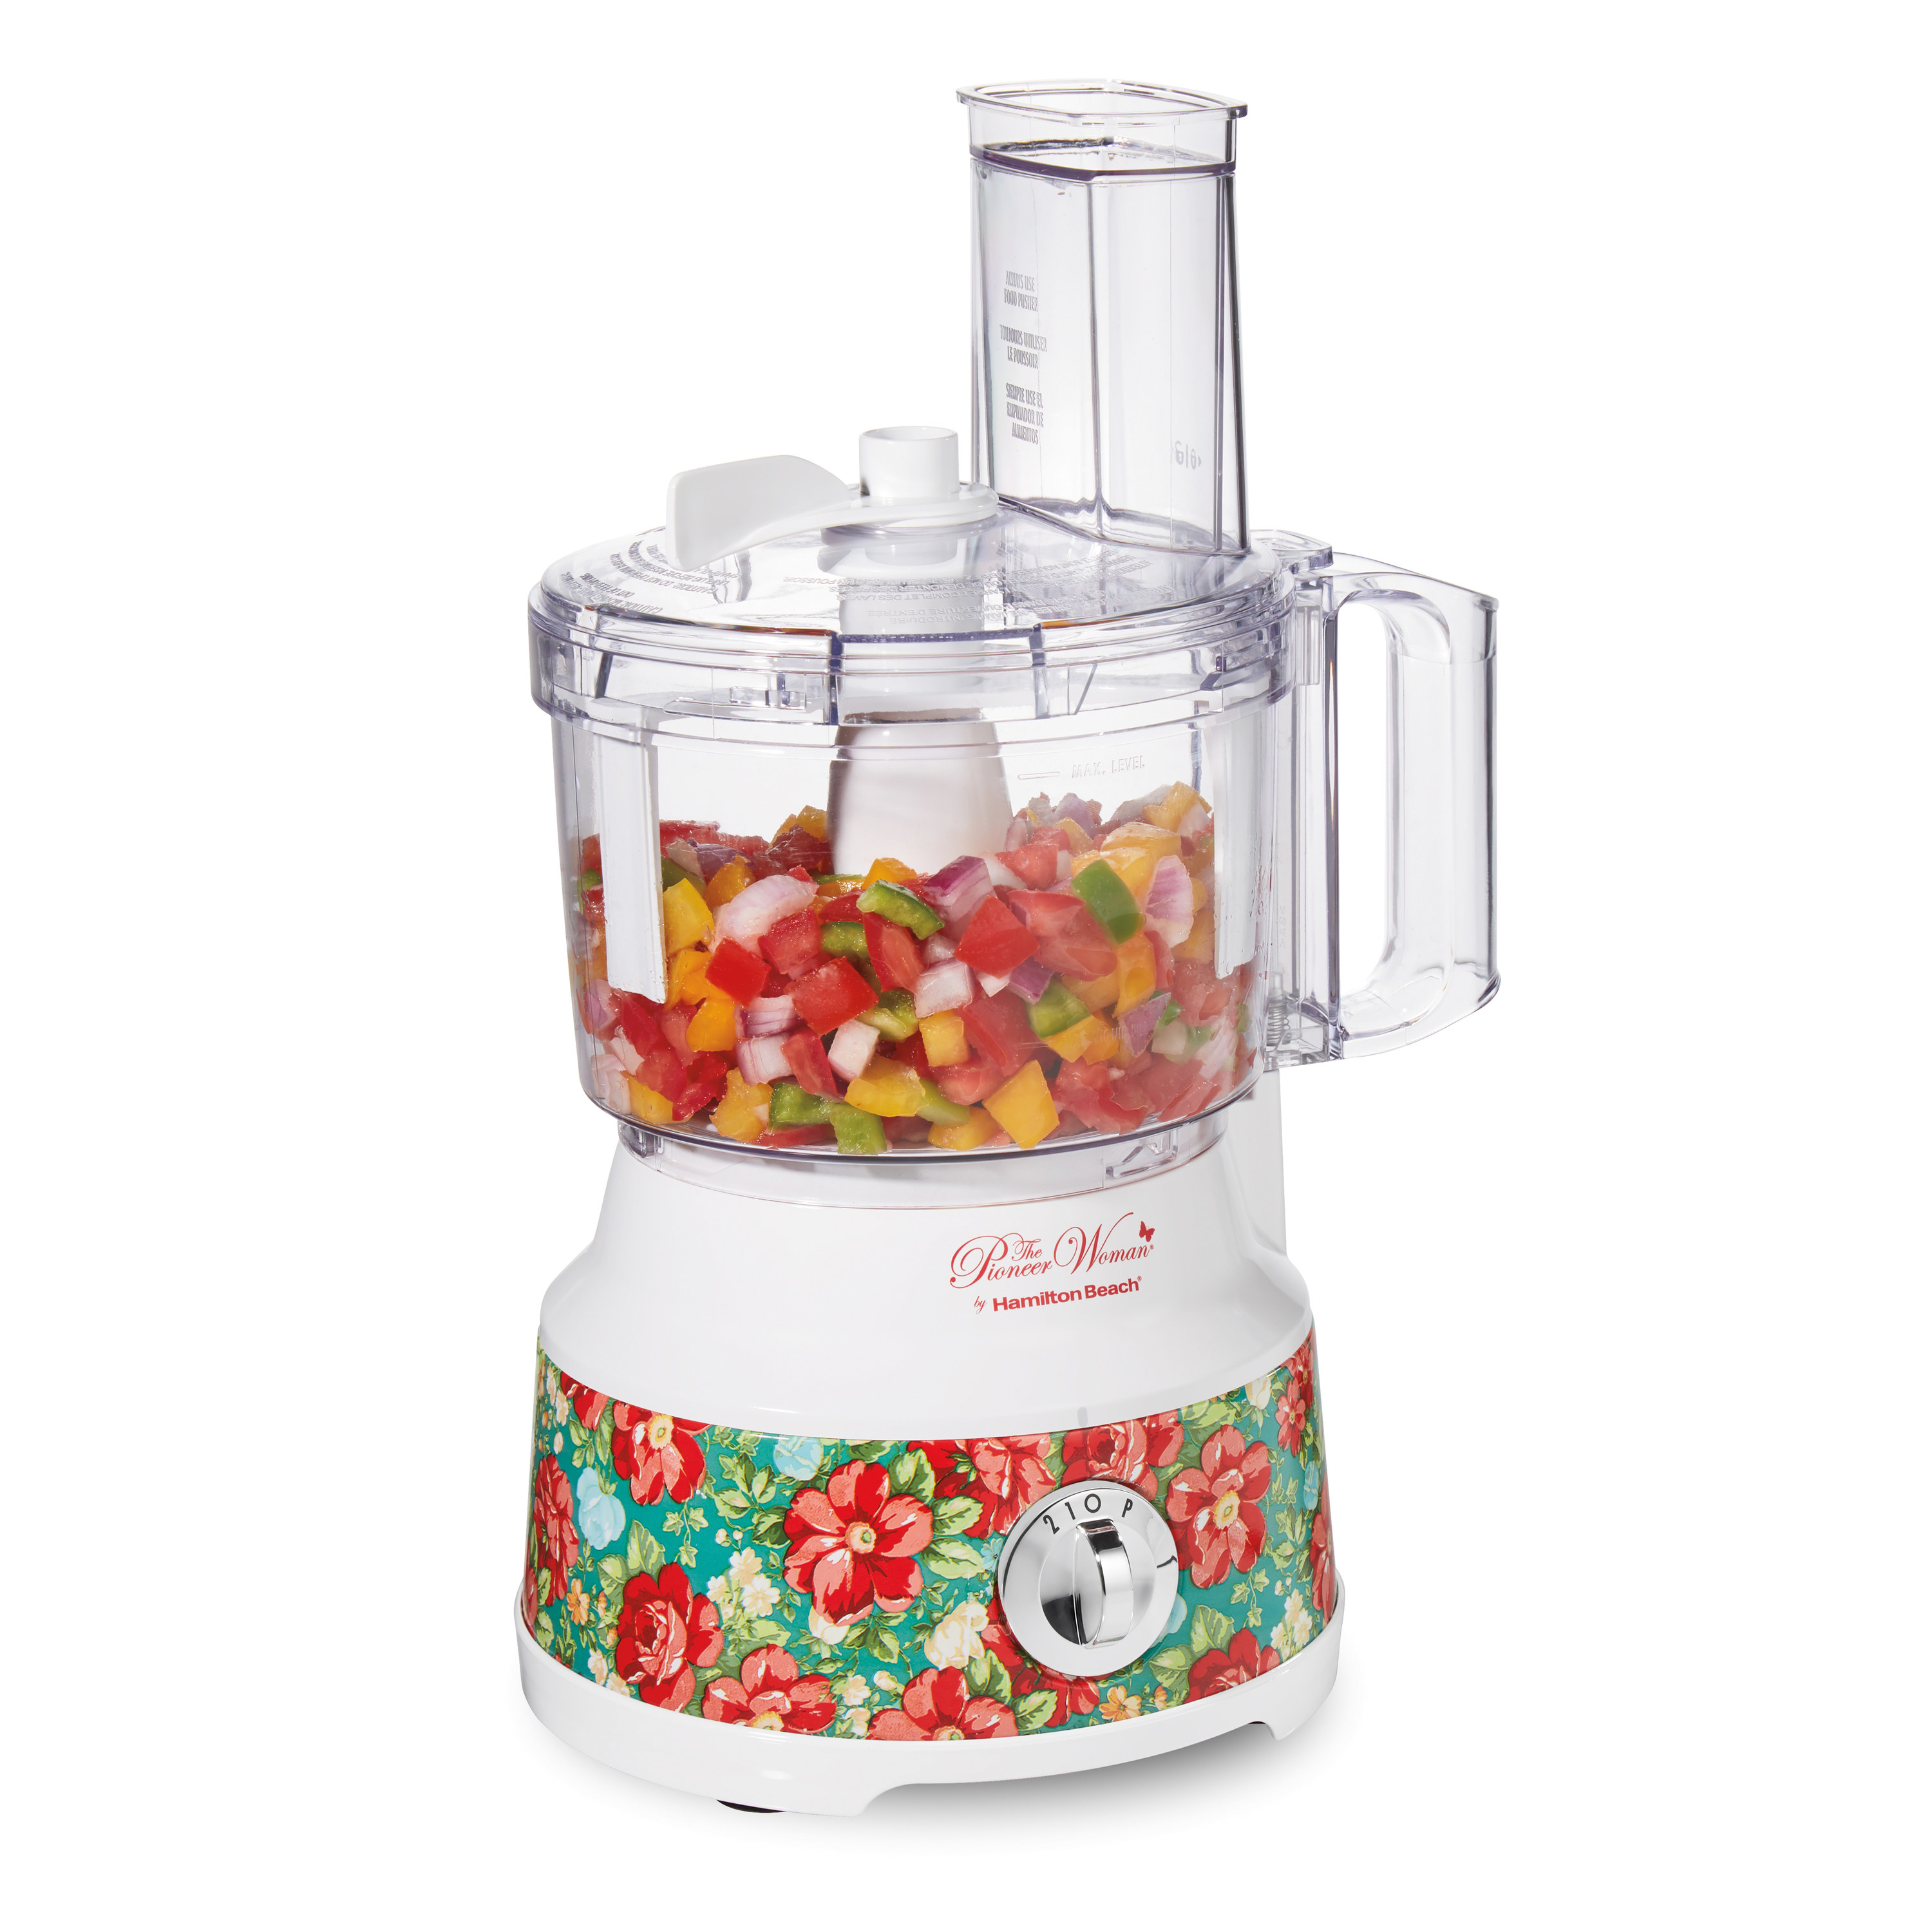 a white food processor with a decorative red floral pattern on the bottom